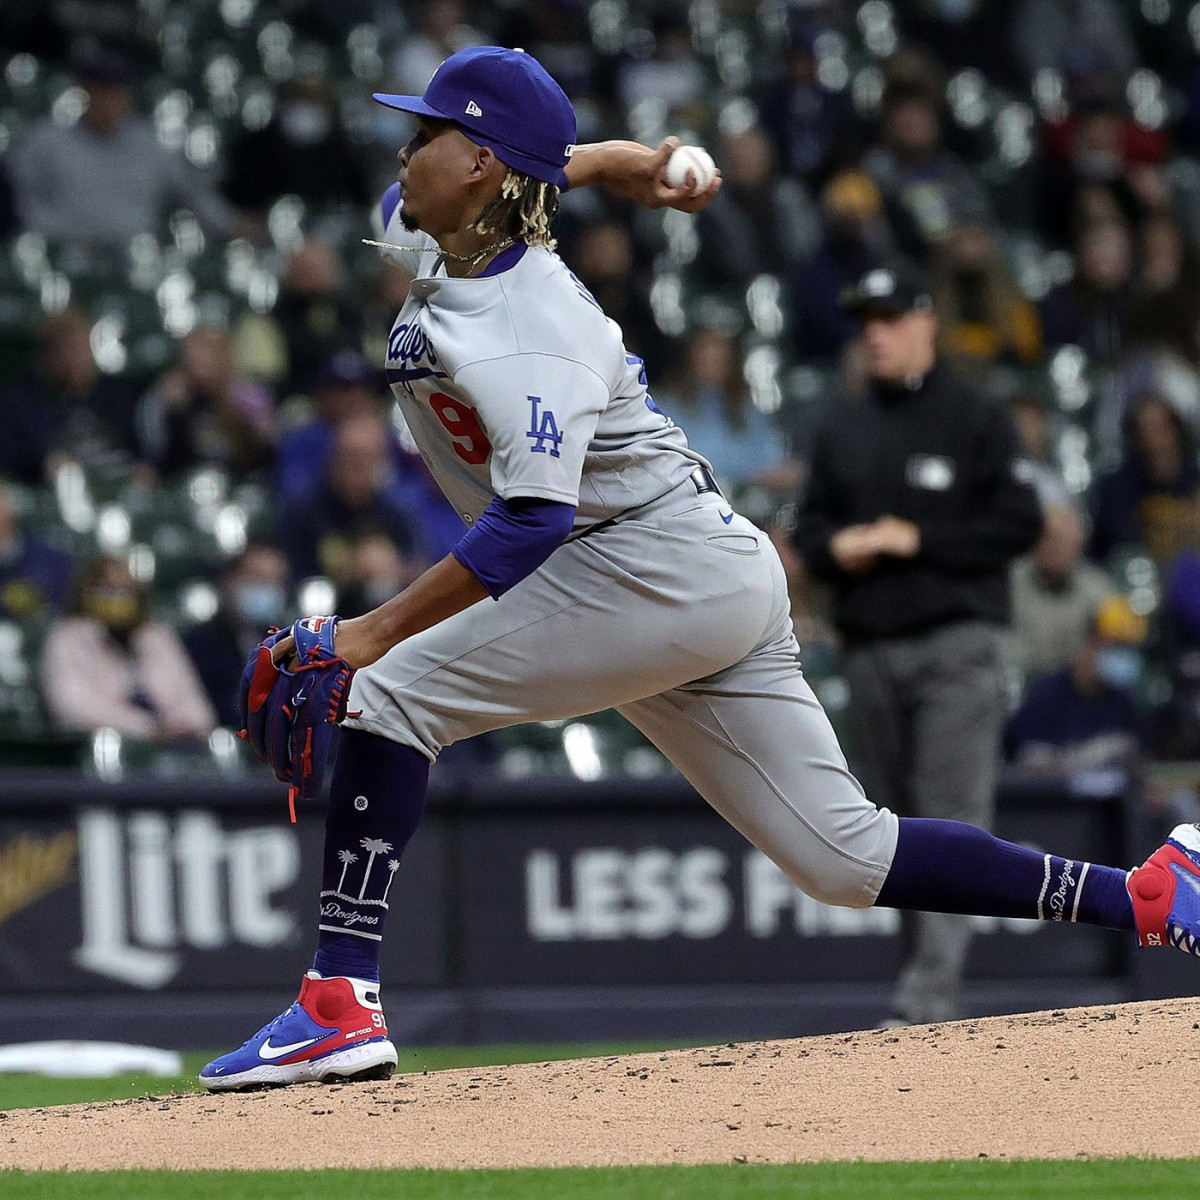 What Can the Dodgers Expect from Edwin Uceta?